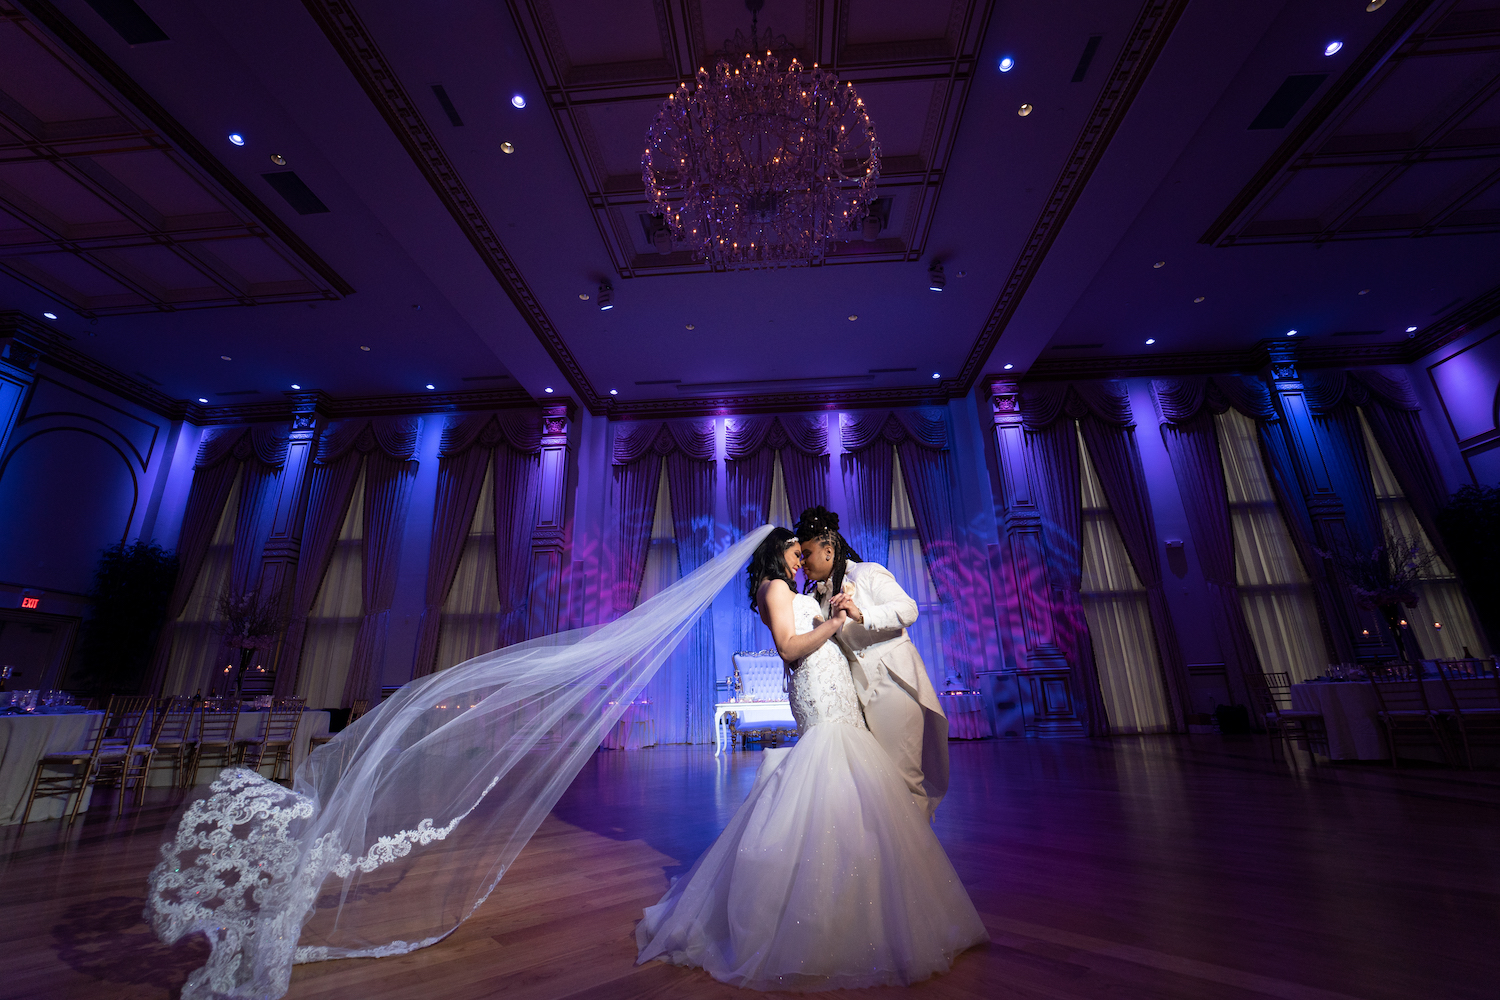 ciara&liana-dancing-empty-ballroom-wedding-photography-nj